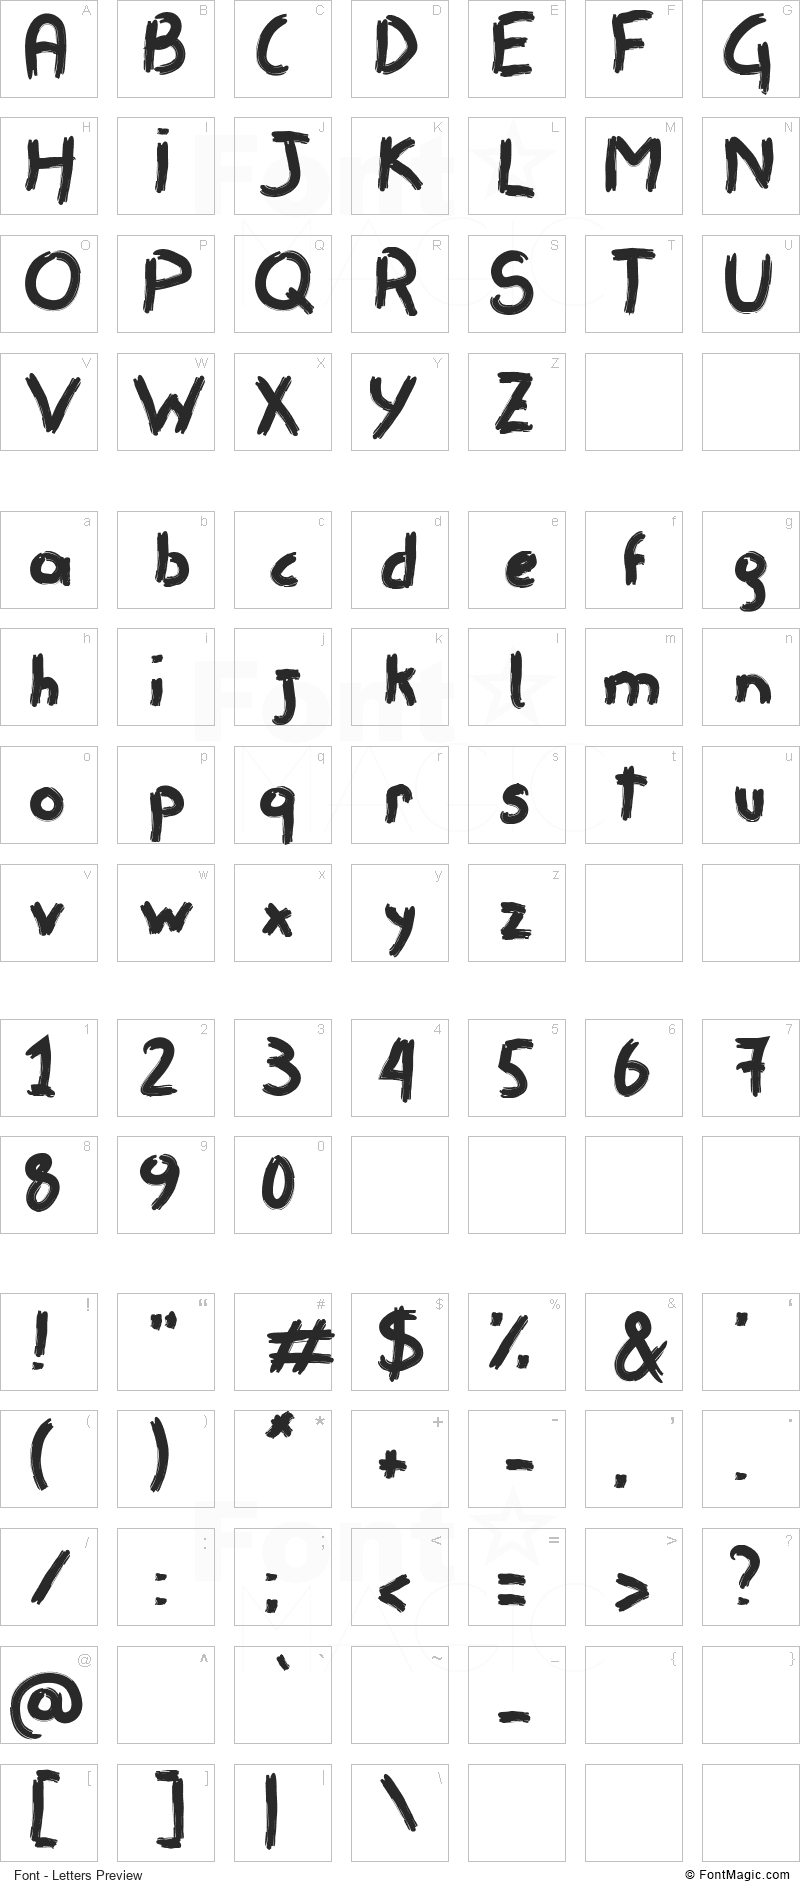 Remisso Font - All Latters Preview Chart